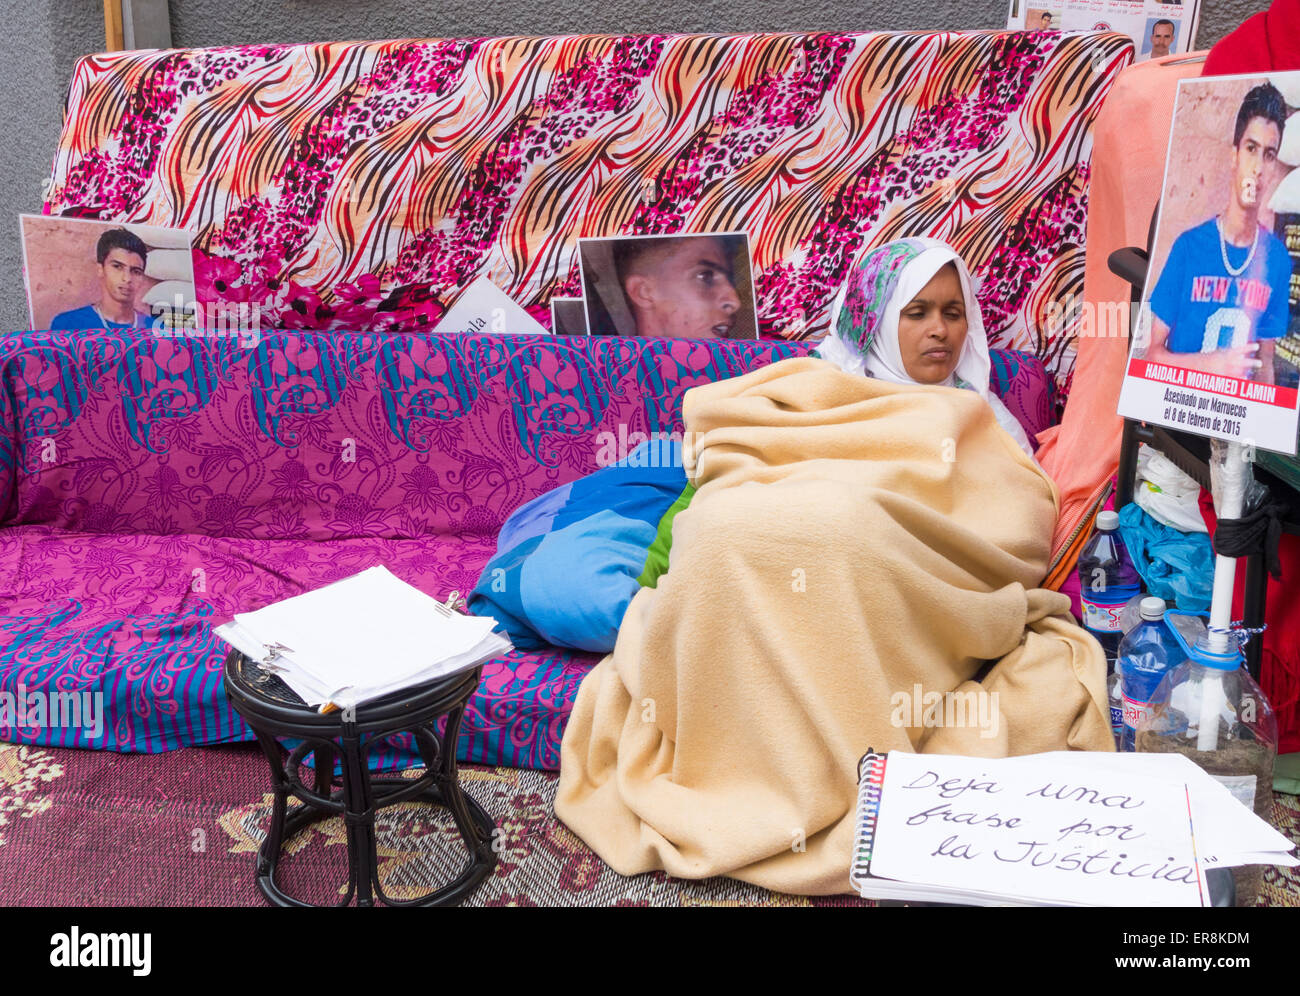 Canary Islands, Spain. 29th May, 2015. Takbar Haddi from Western Sahara starts her fifteenth day of an indefinate - Stock Image